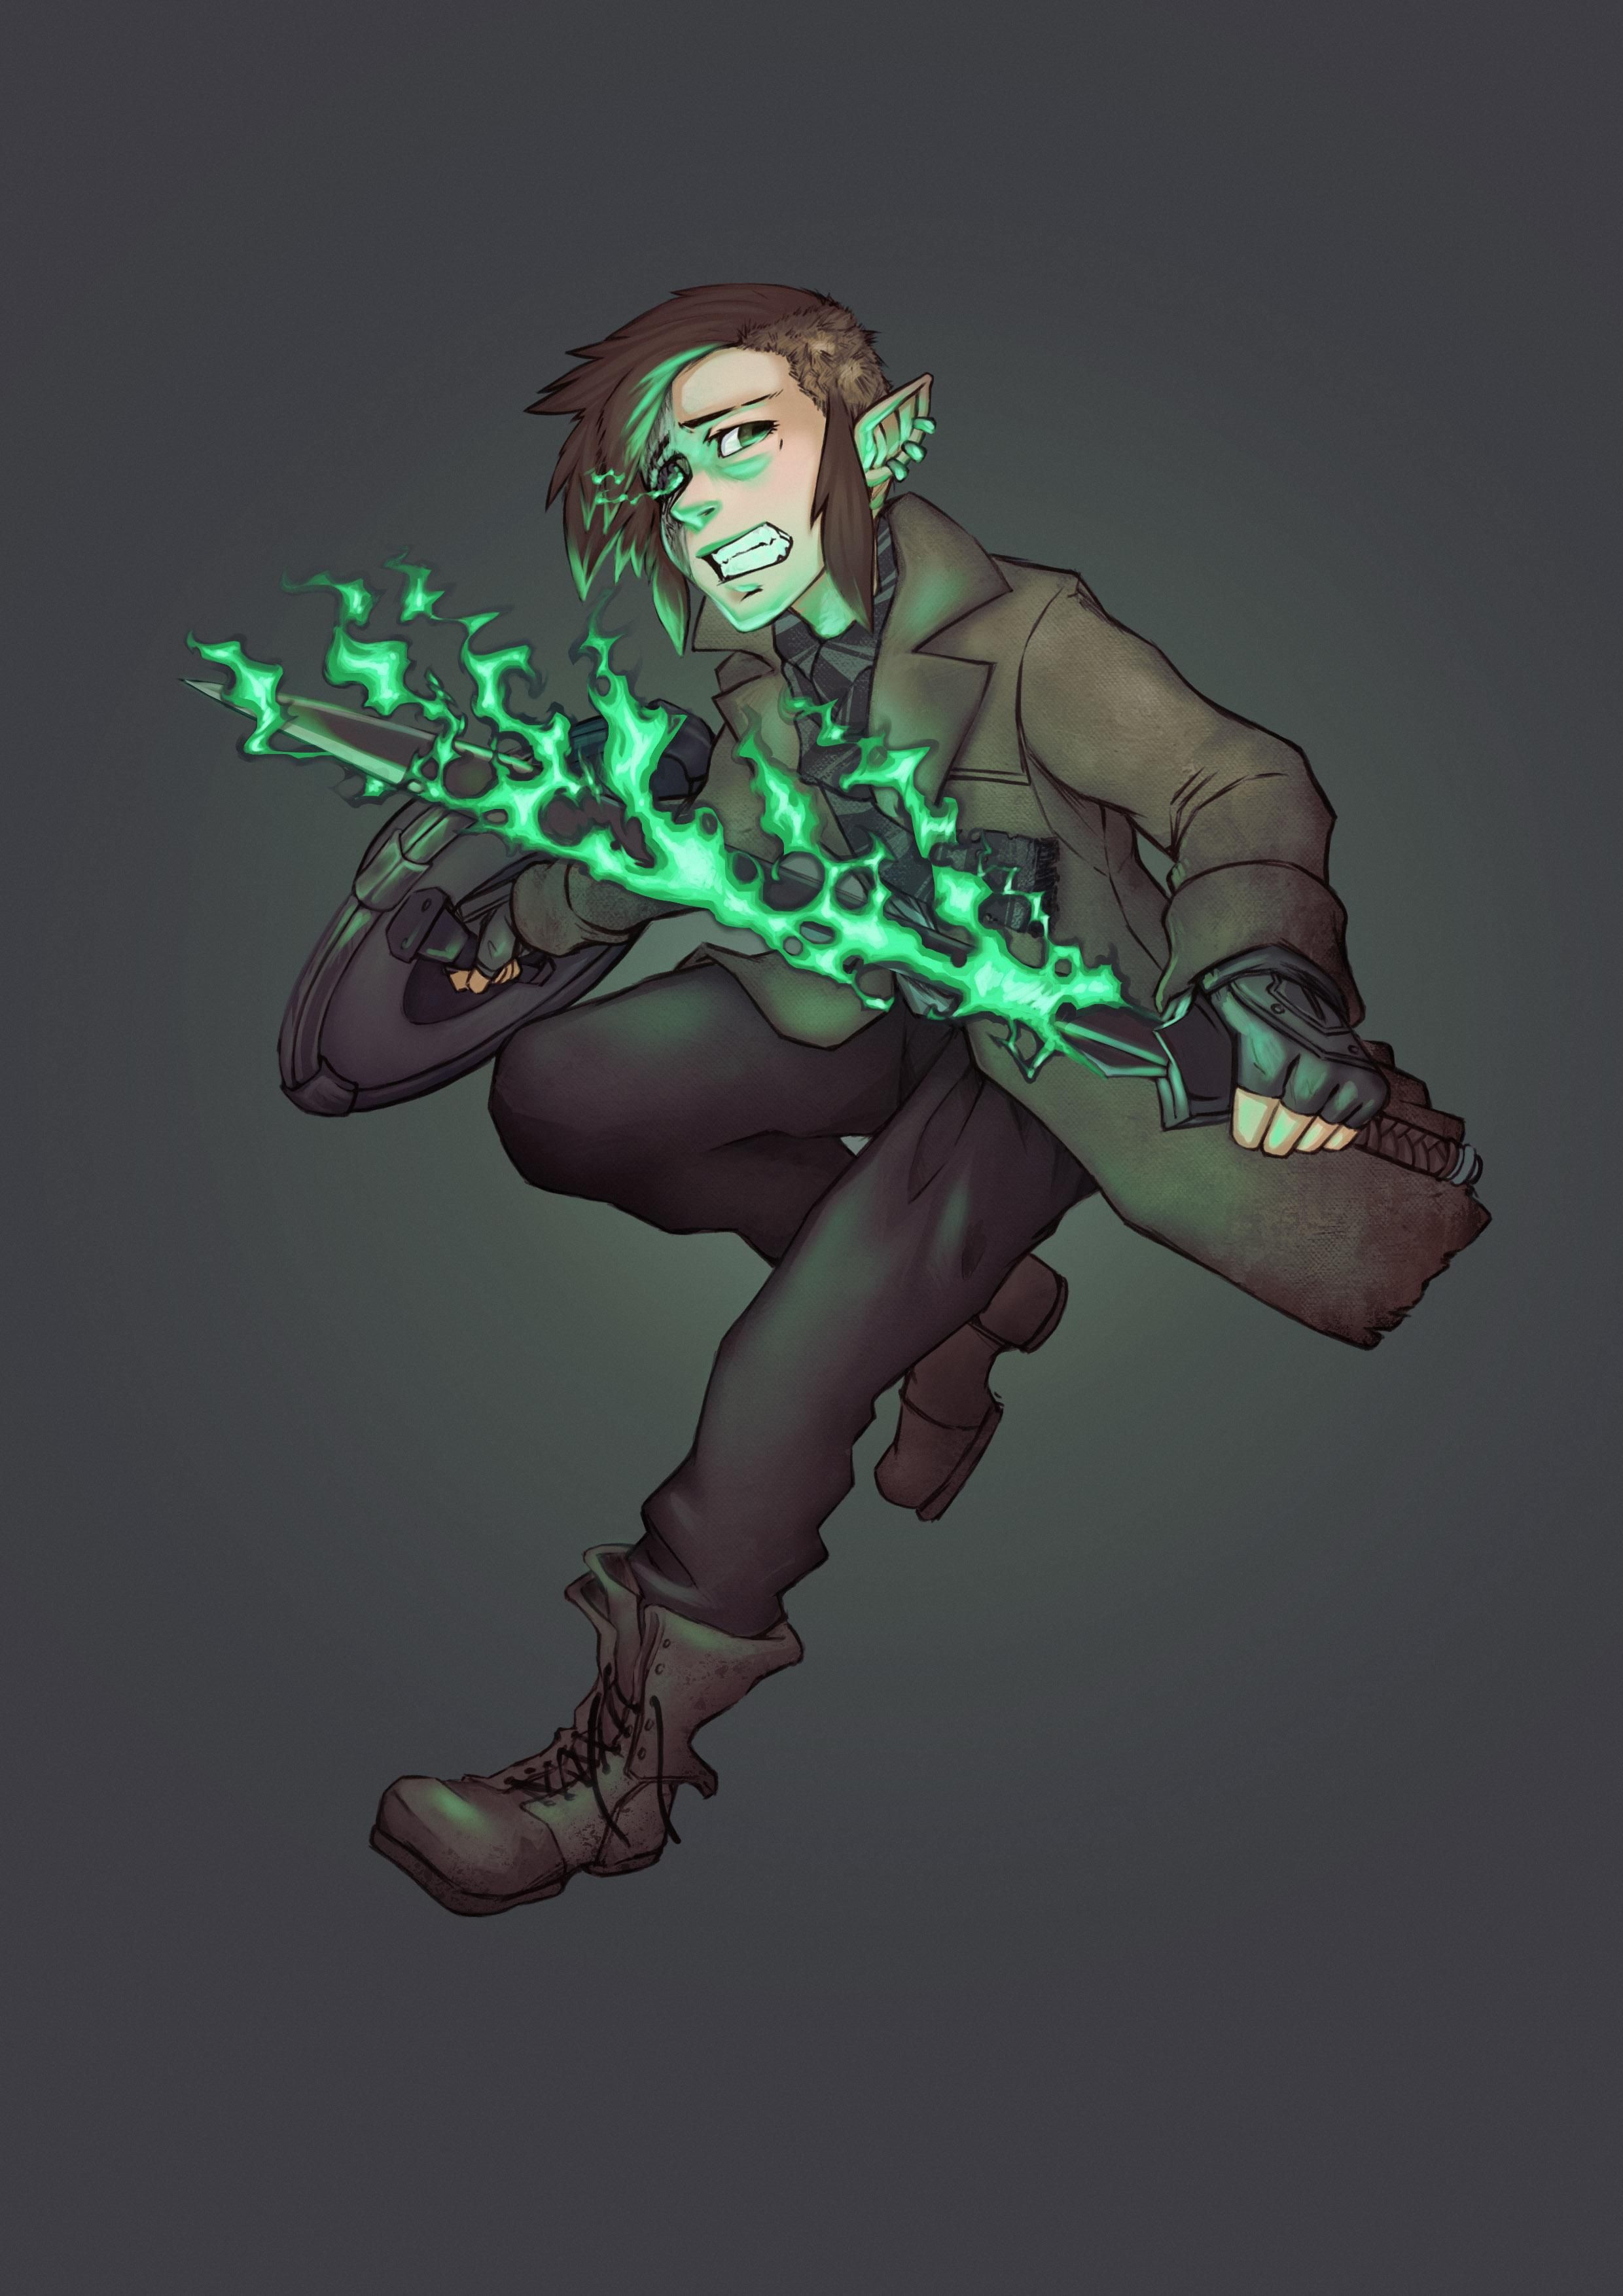 OC] Leone Forster | Undying Warlock Fighter | Drawn by